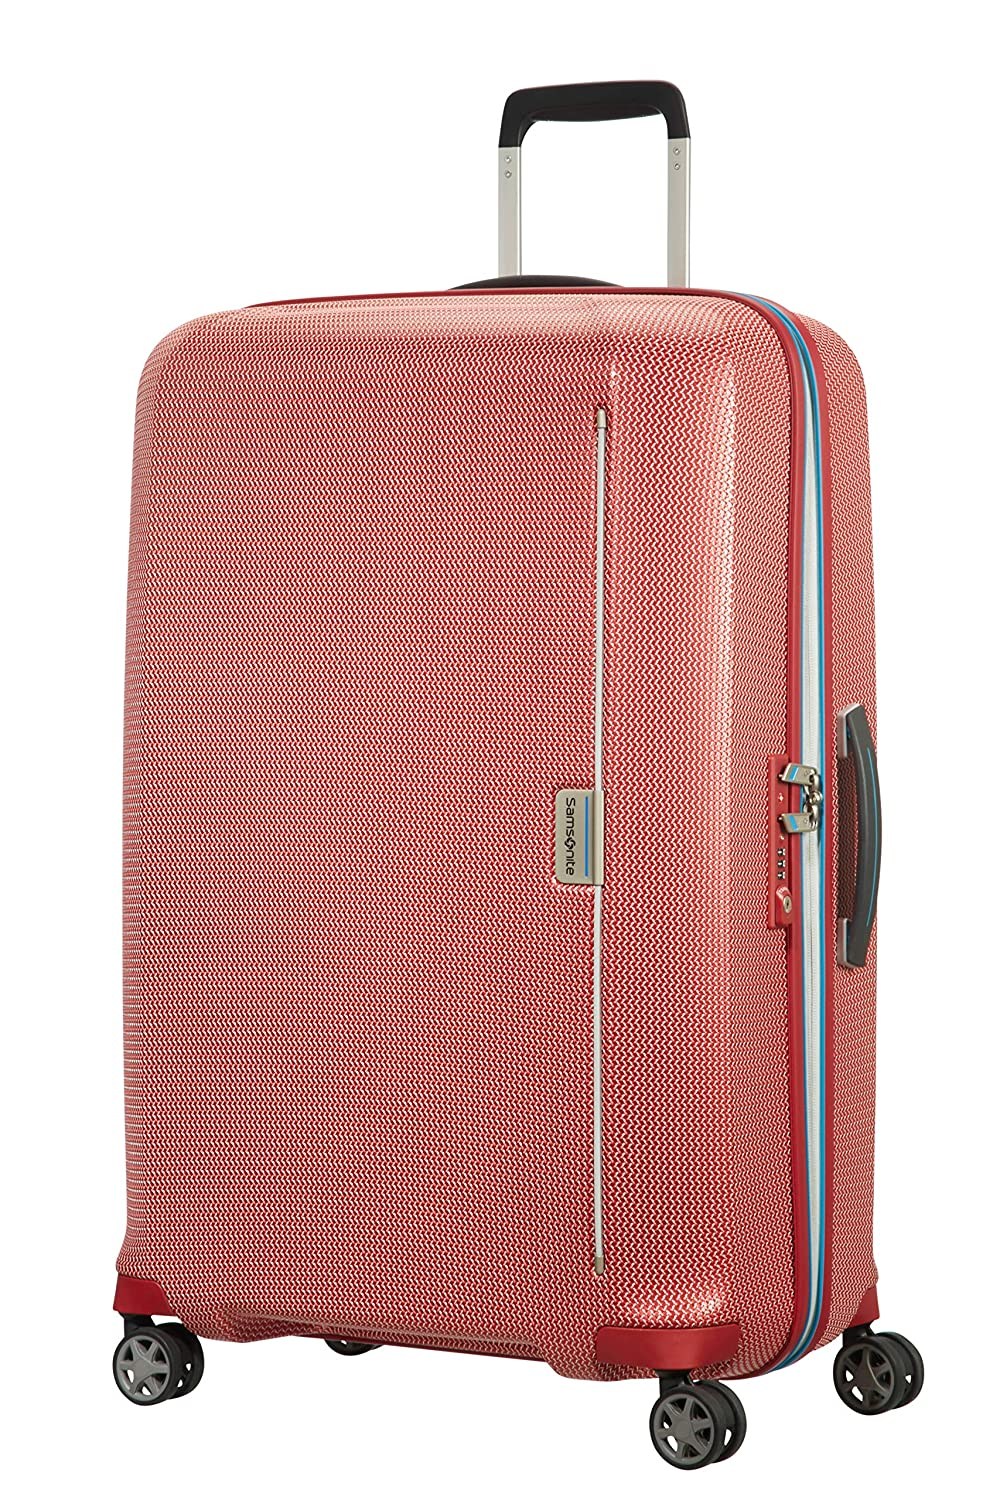 Samsonite Maleta, Red/Pacific Blue (Rojo) - 106747/7085: Amazon.es: Equipaje